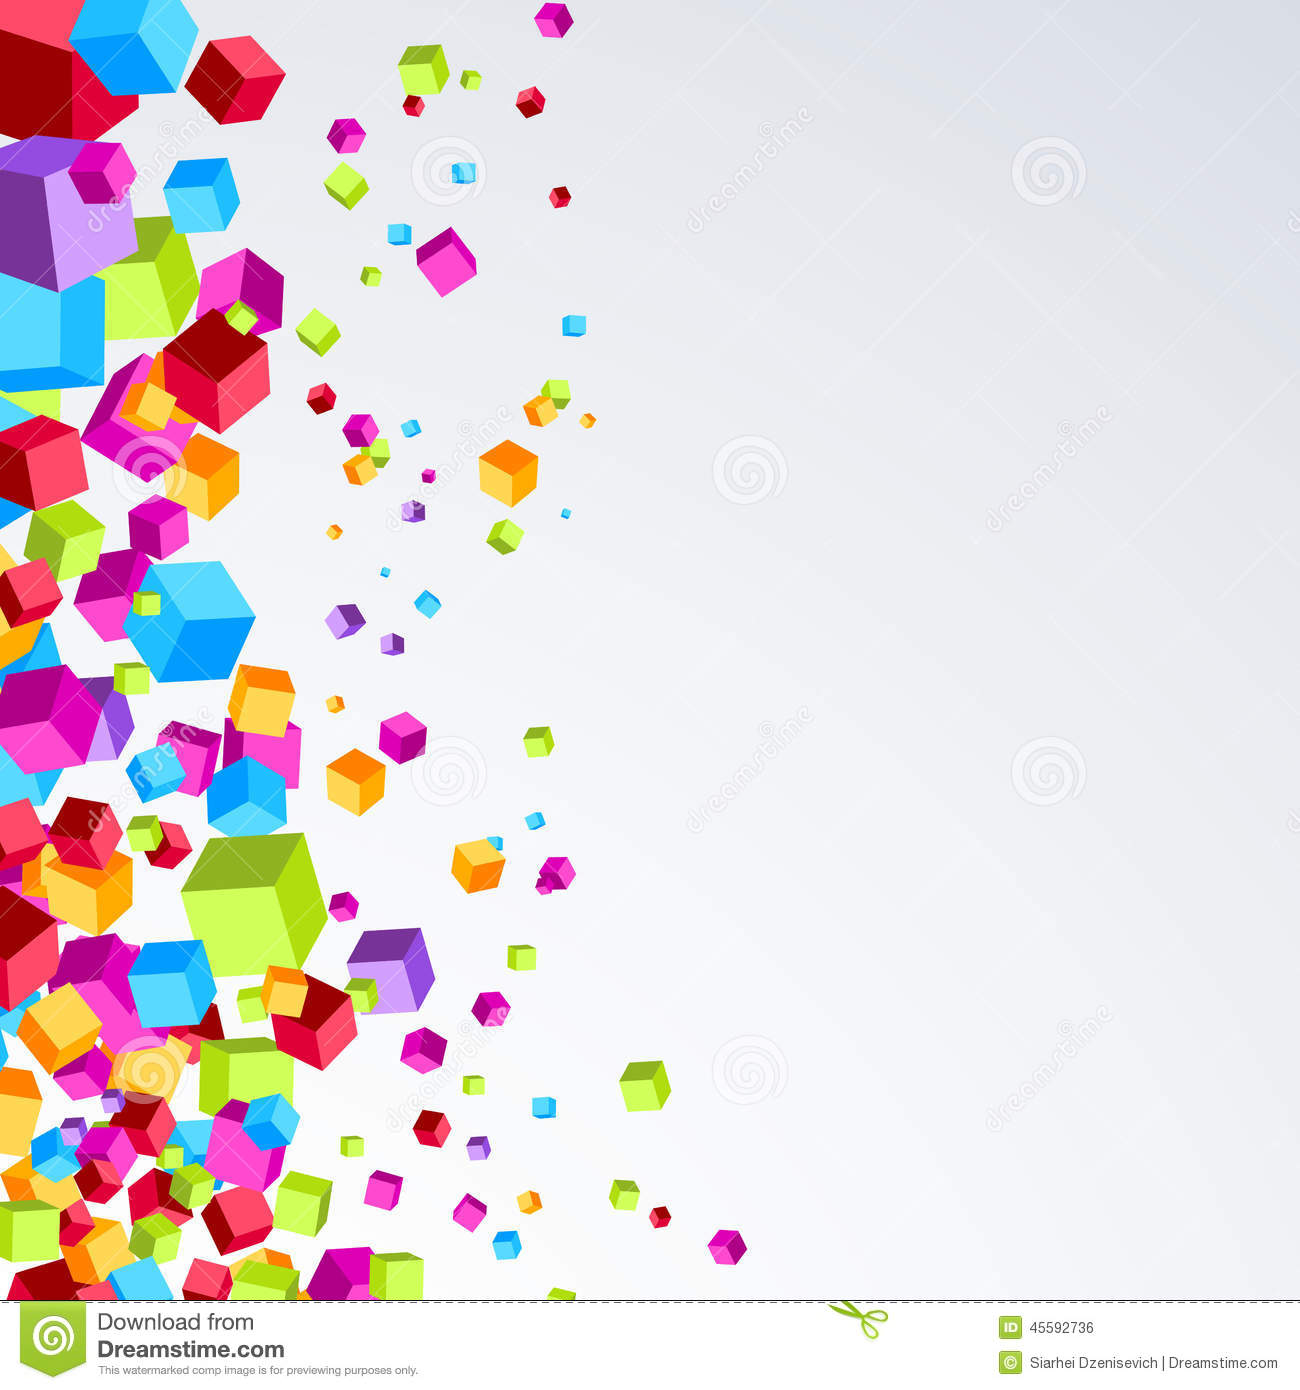 Colorful Abstract Modern Banner: Bright Plastic Cube Fly Border Bright Background Stock